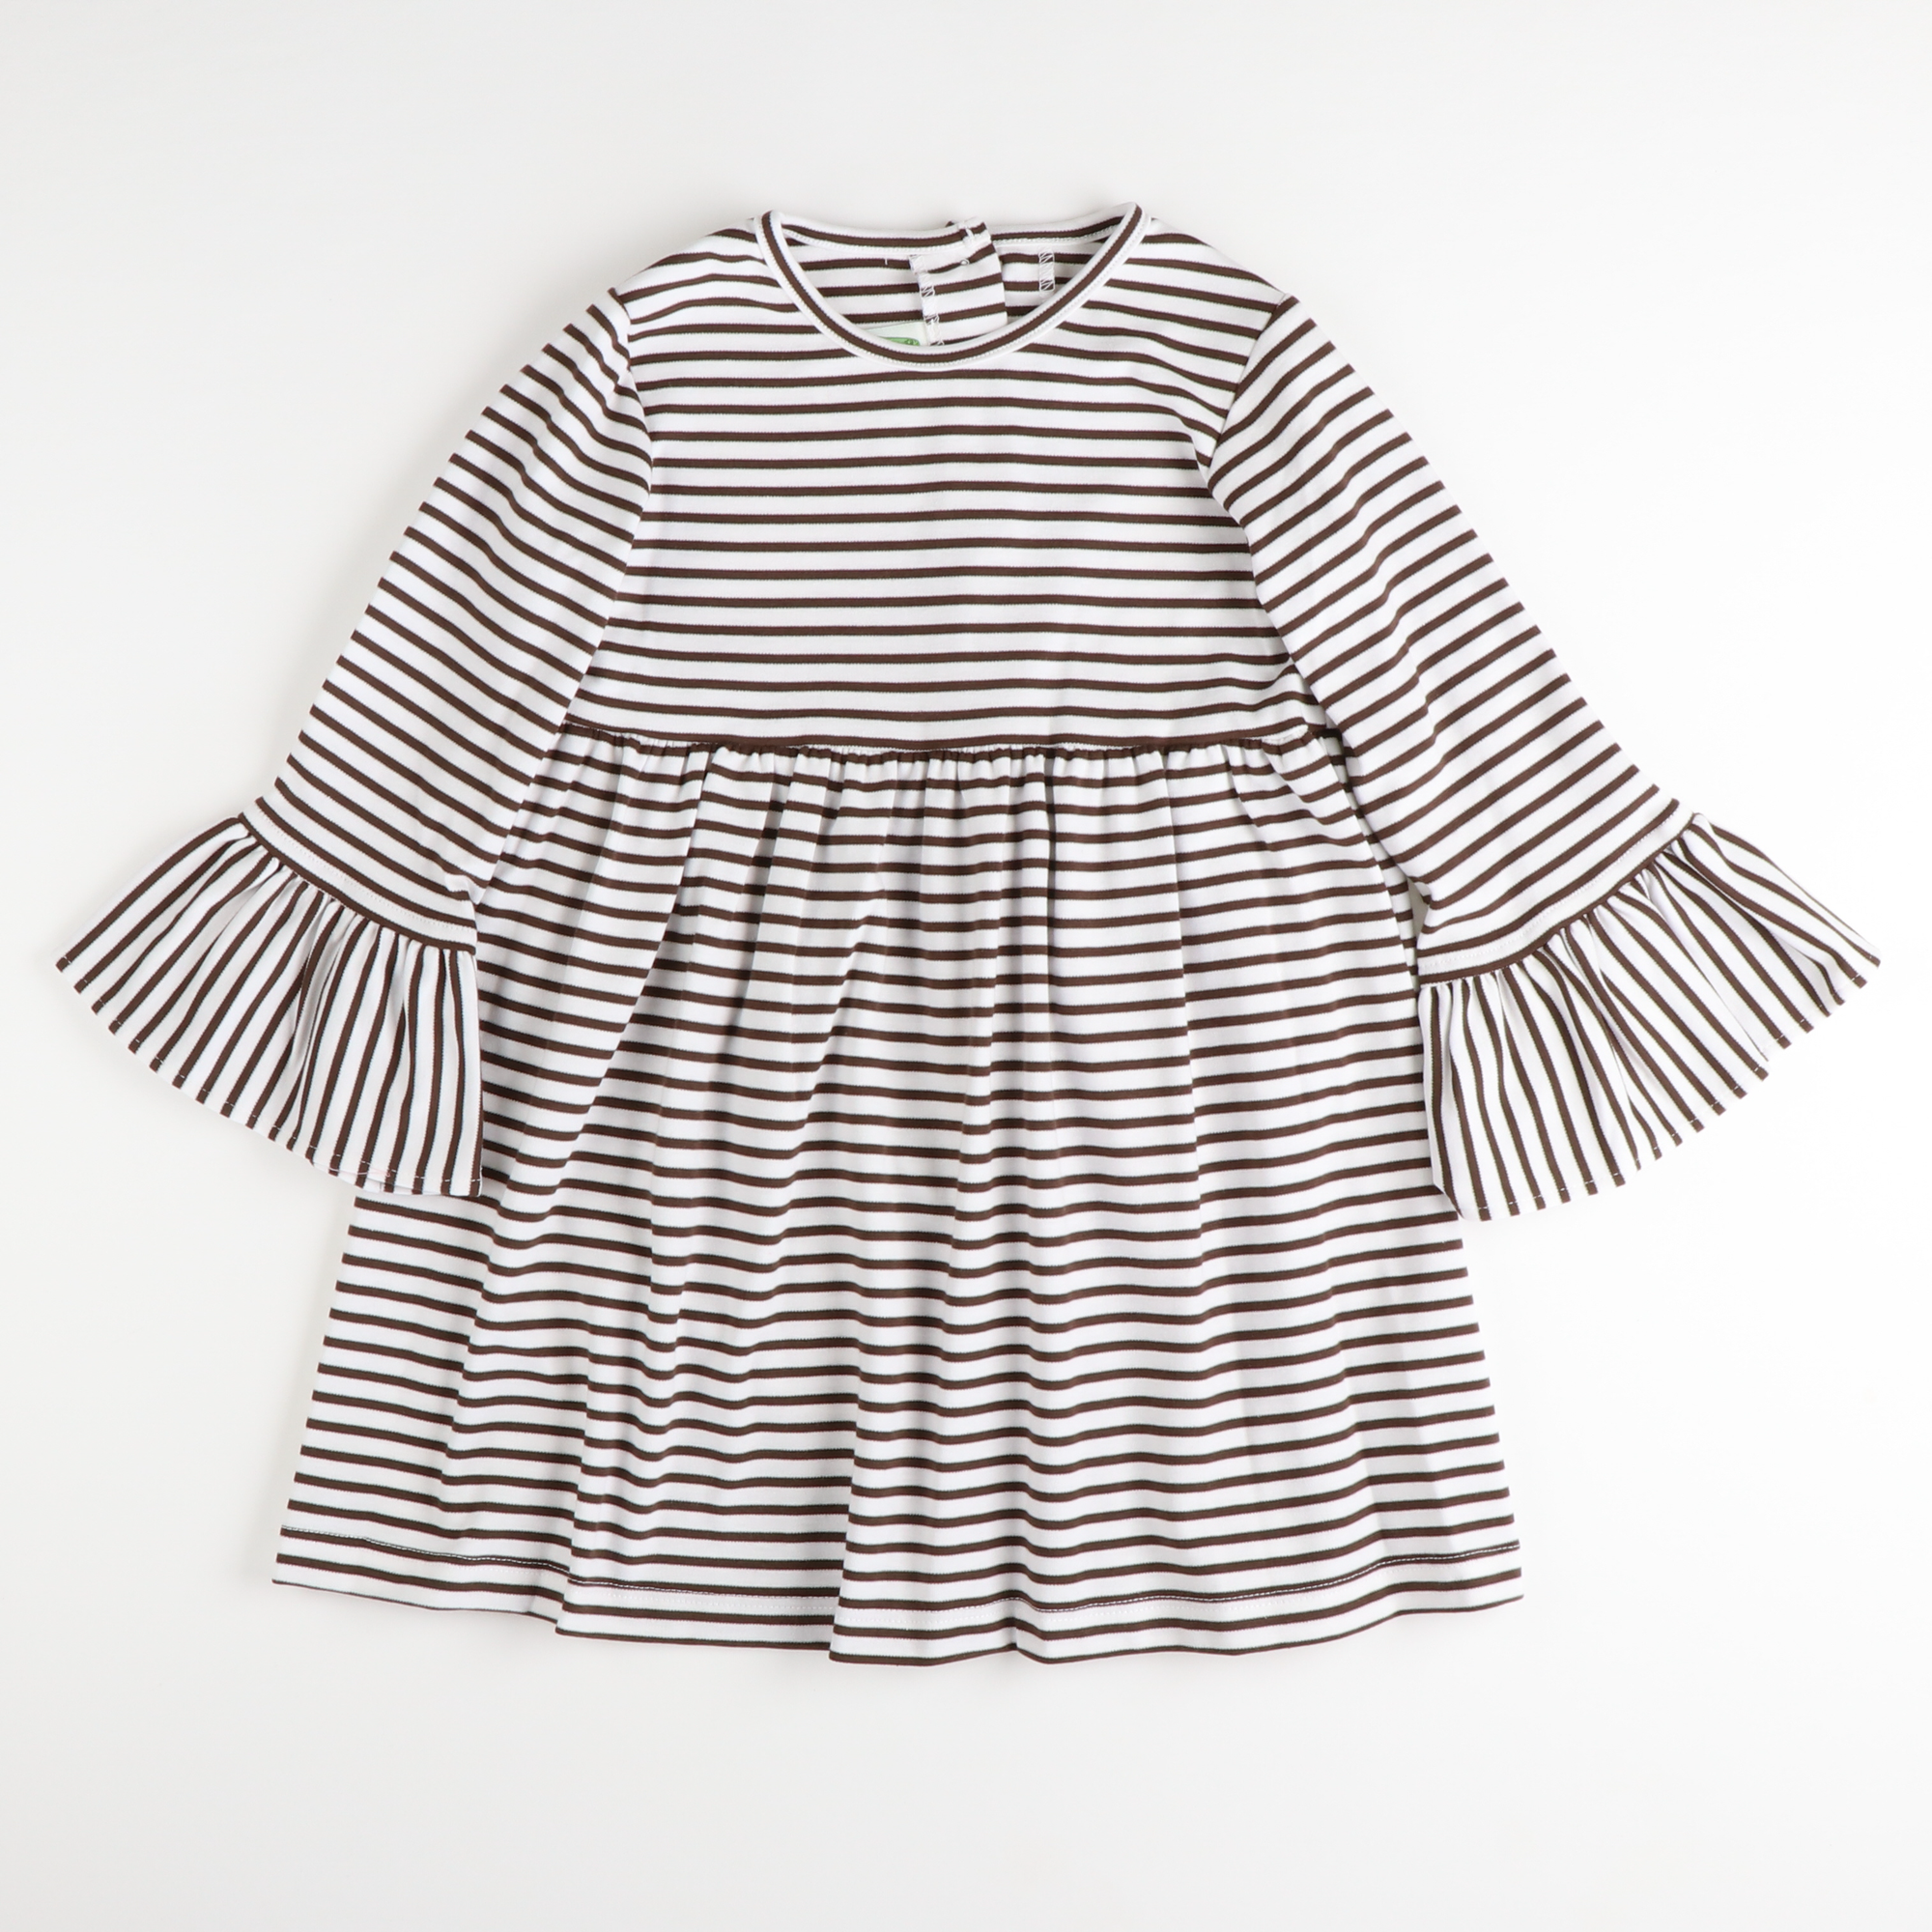 Bell Sleeve Dress - Brown Stripe Knit